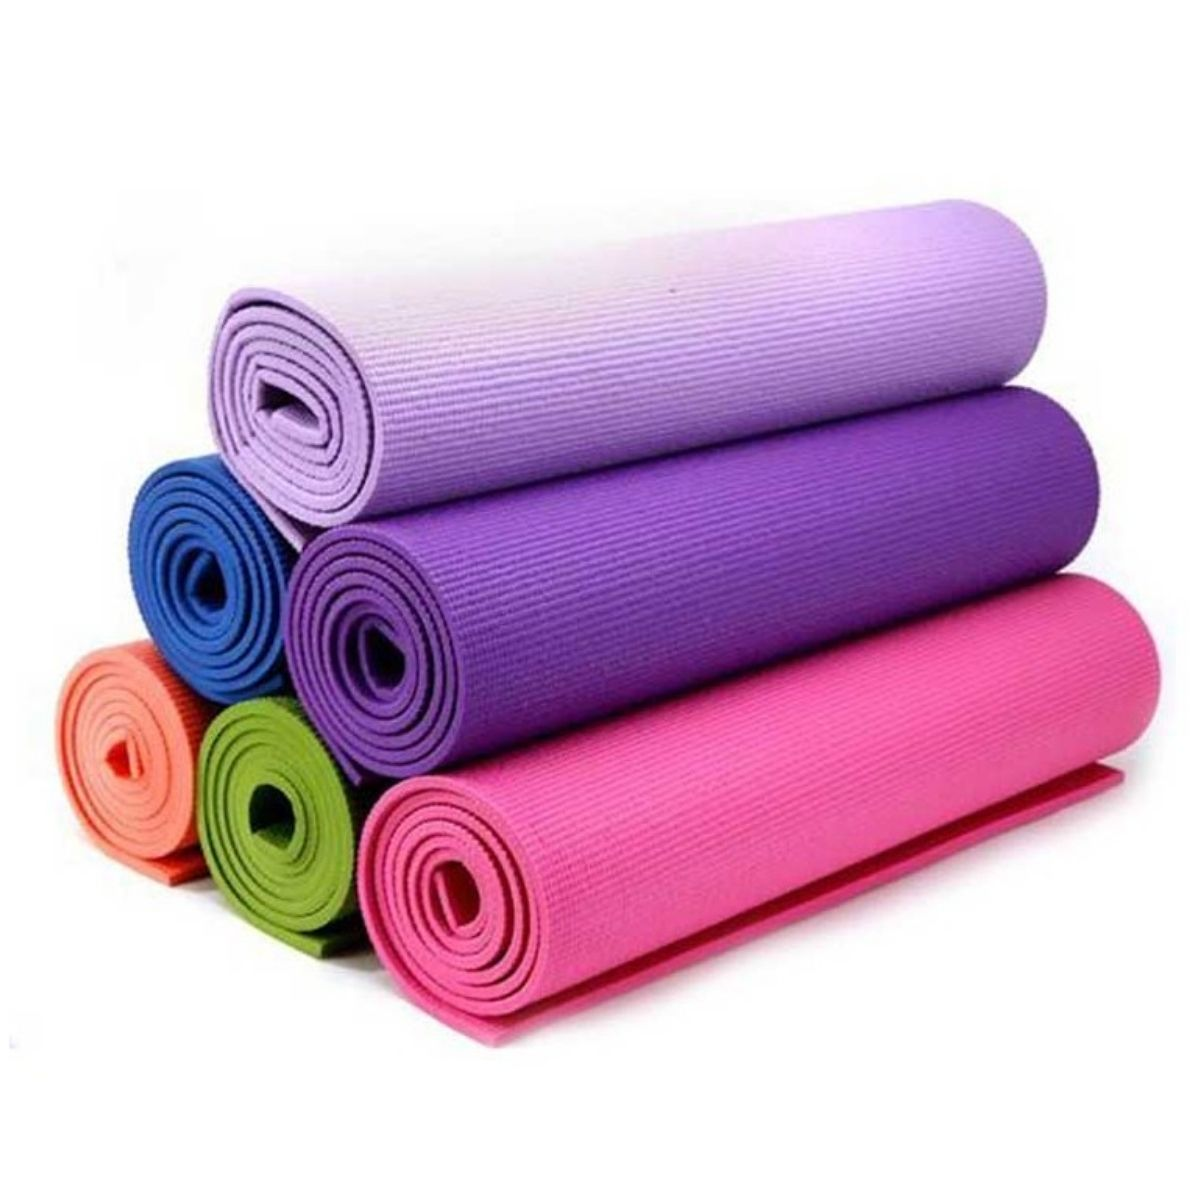 YOGA MAT - 4 MM - IMPORTED